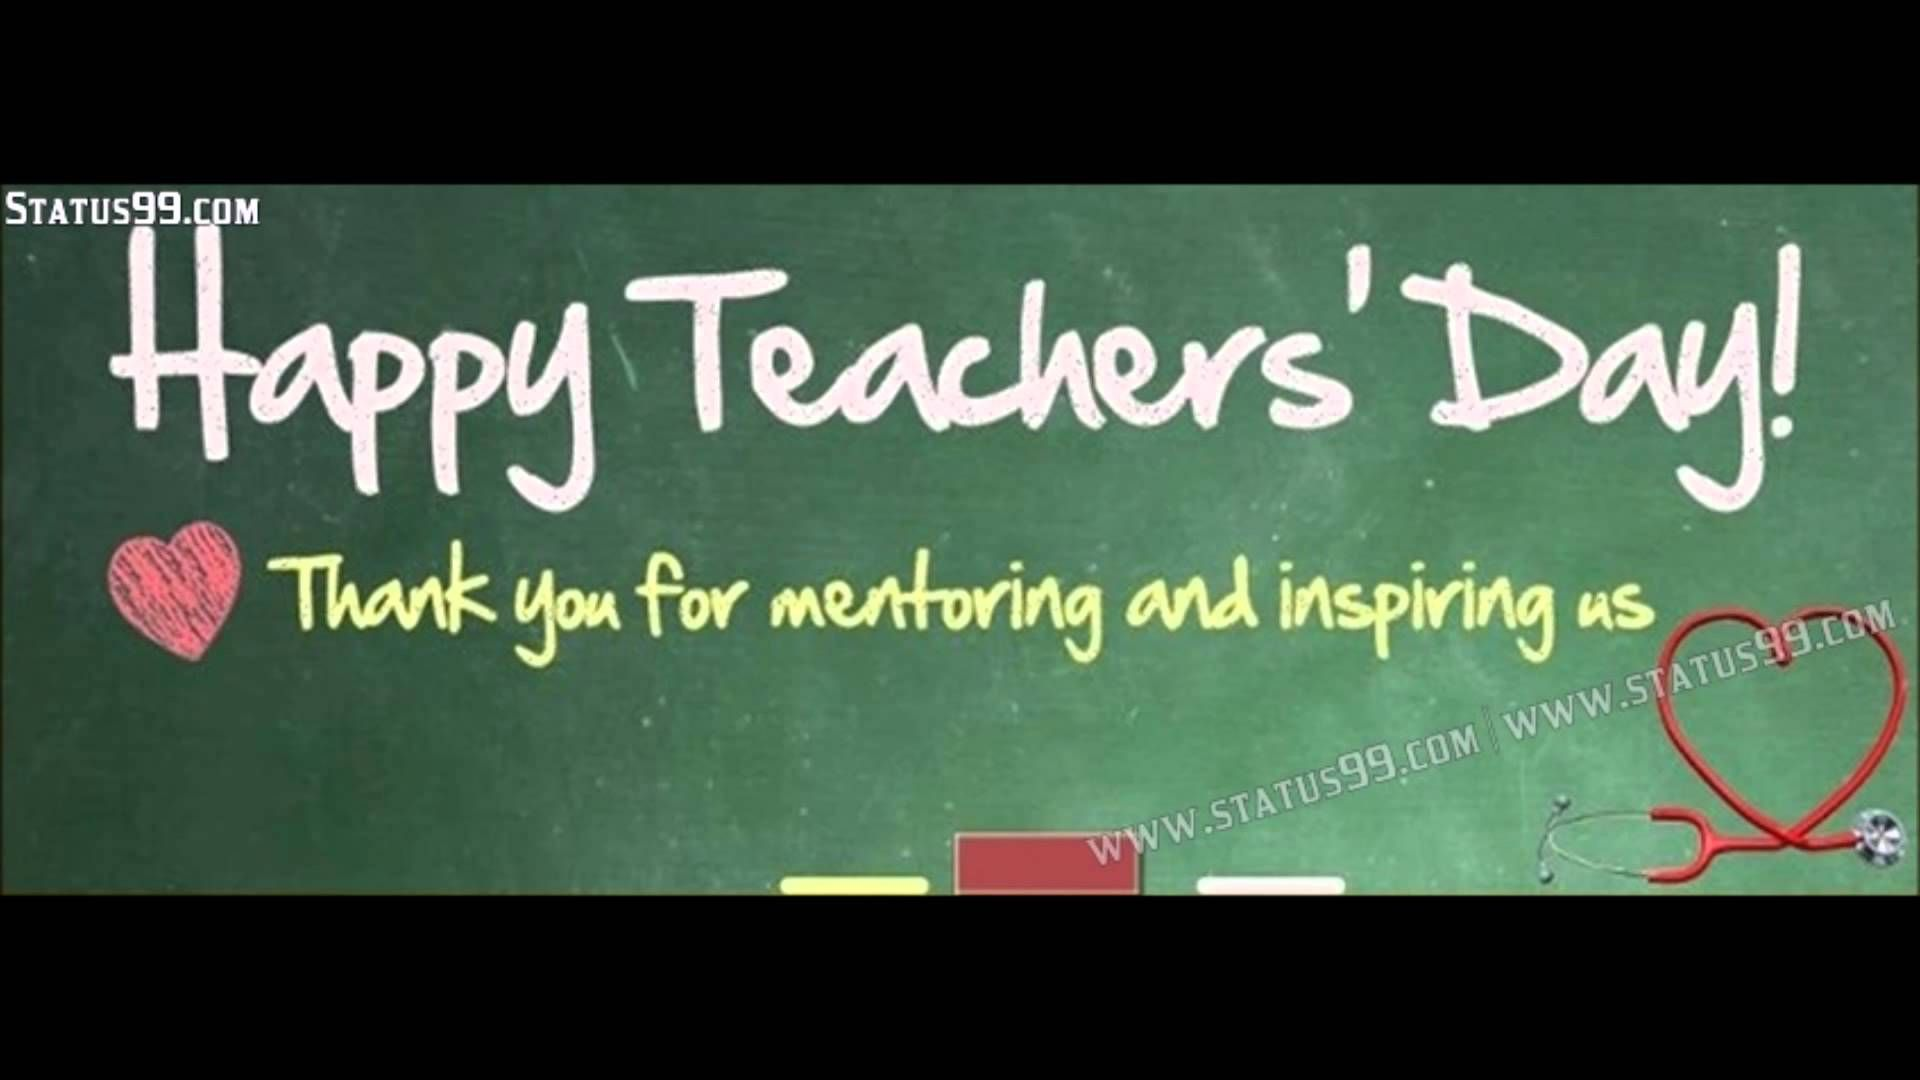 Happy Teachers Day 2018 Wishes Greetings Video Song Mp4 3gp Hd Download Happy Teachers Day Teachers Day Wishes Teachers Day